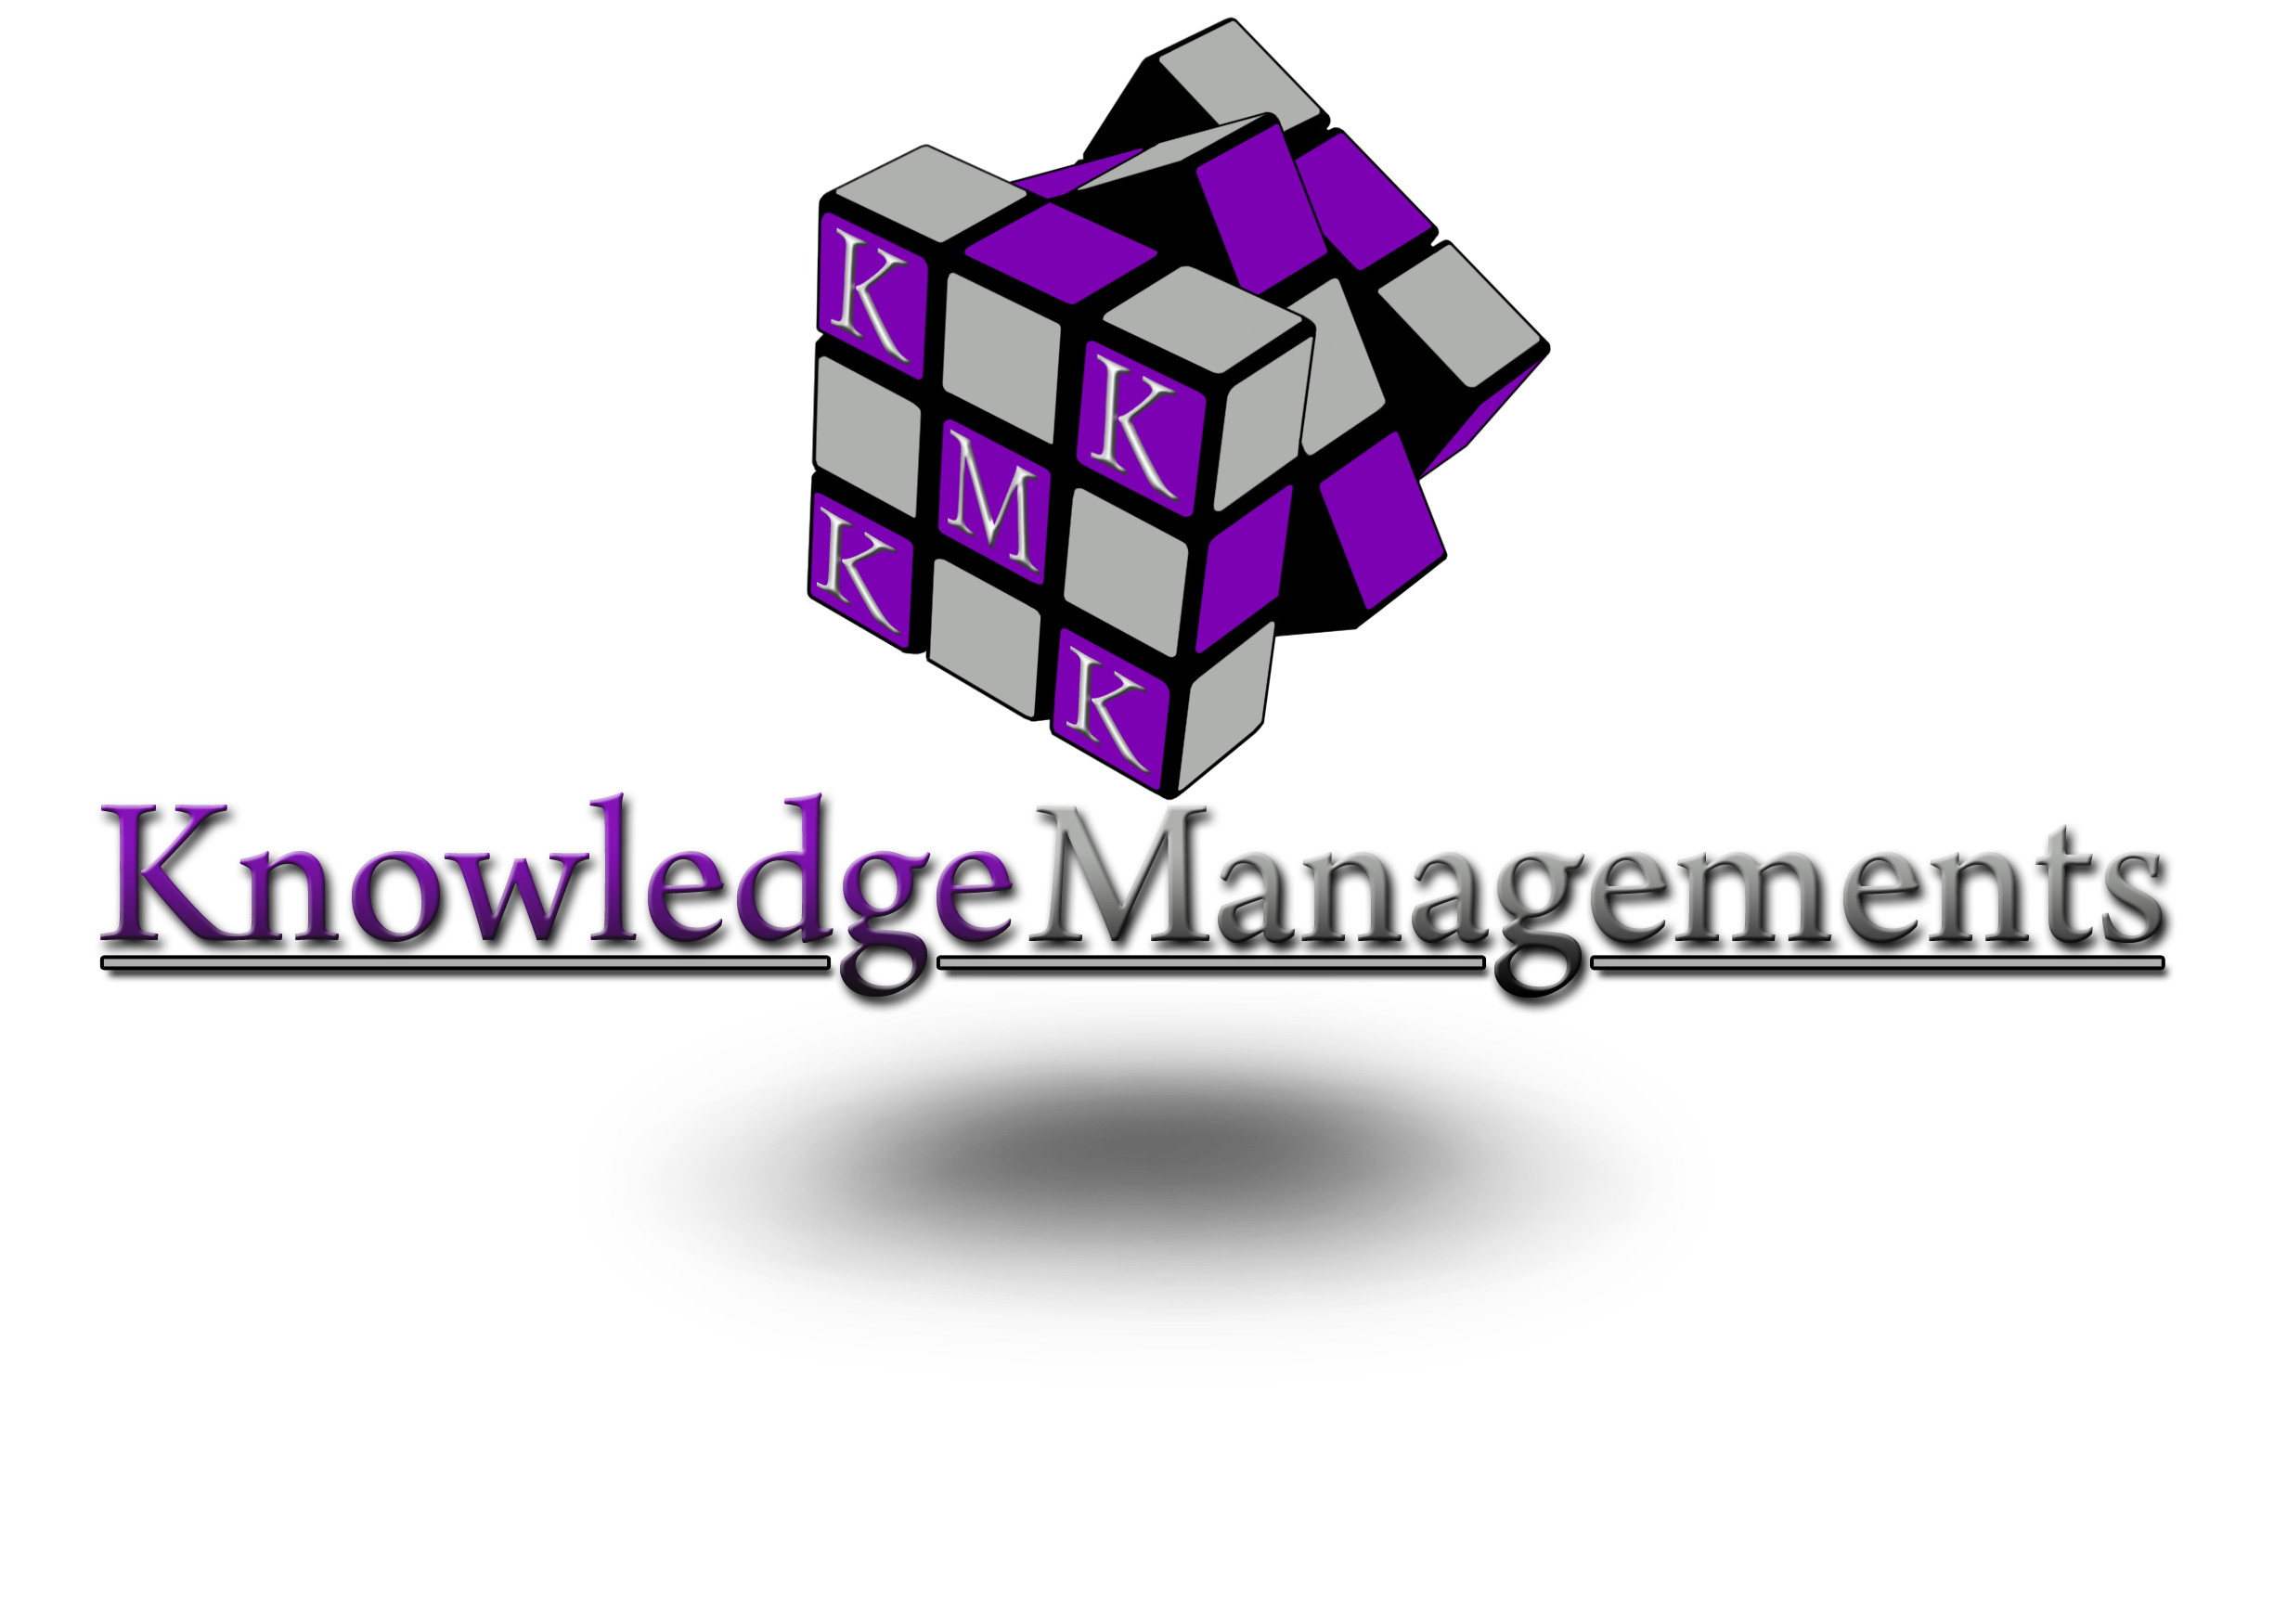 Knowledge Managements